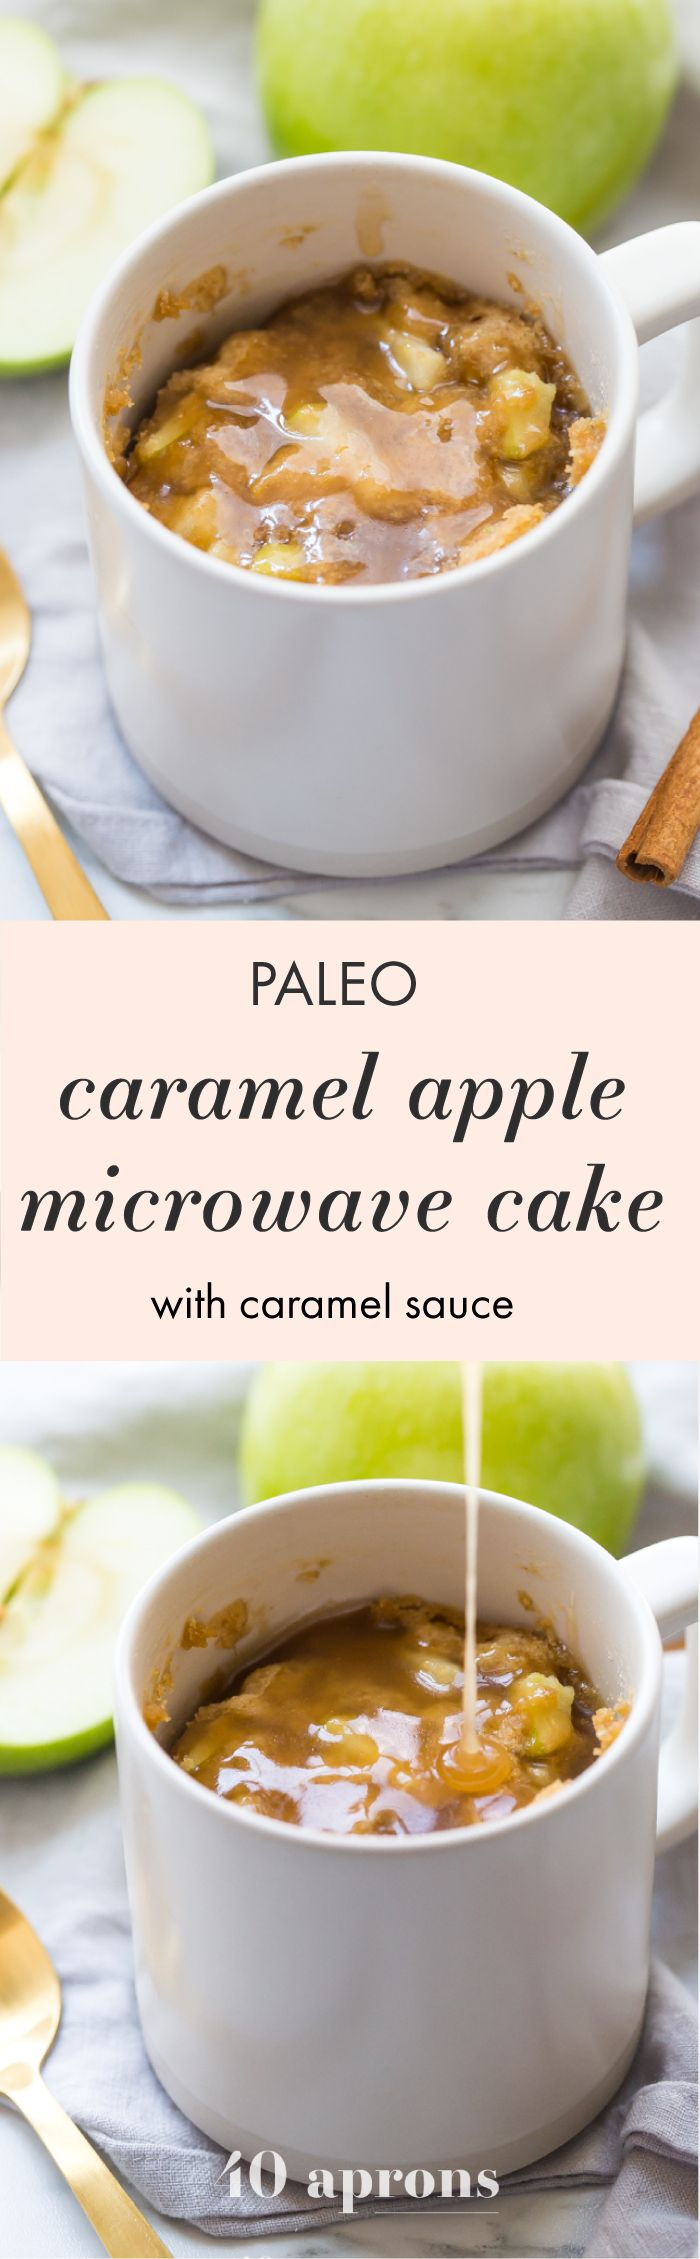 how to cook apple in microwave for baby